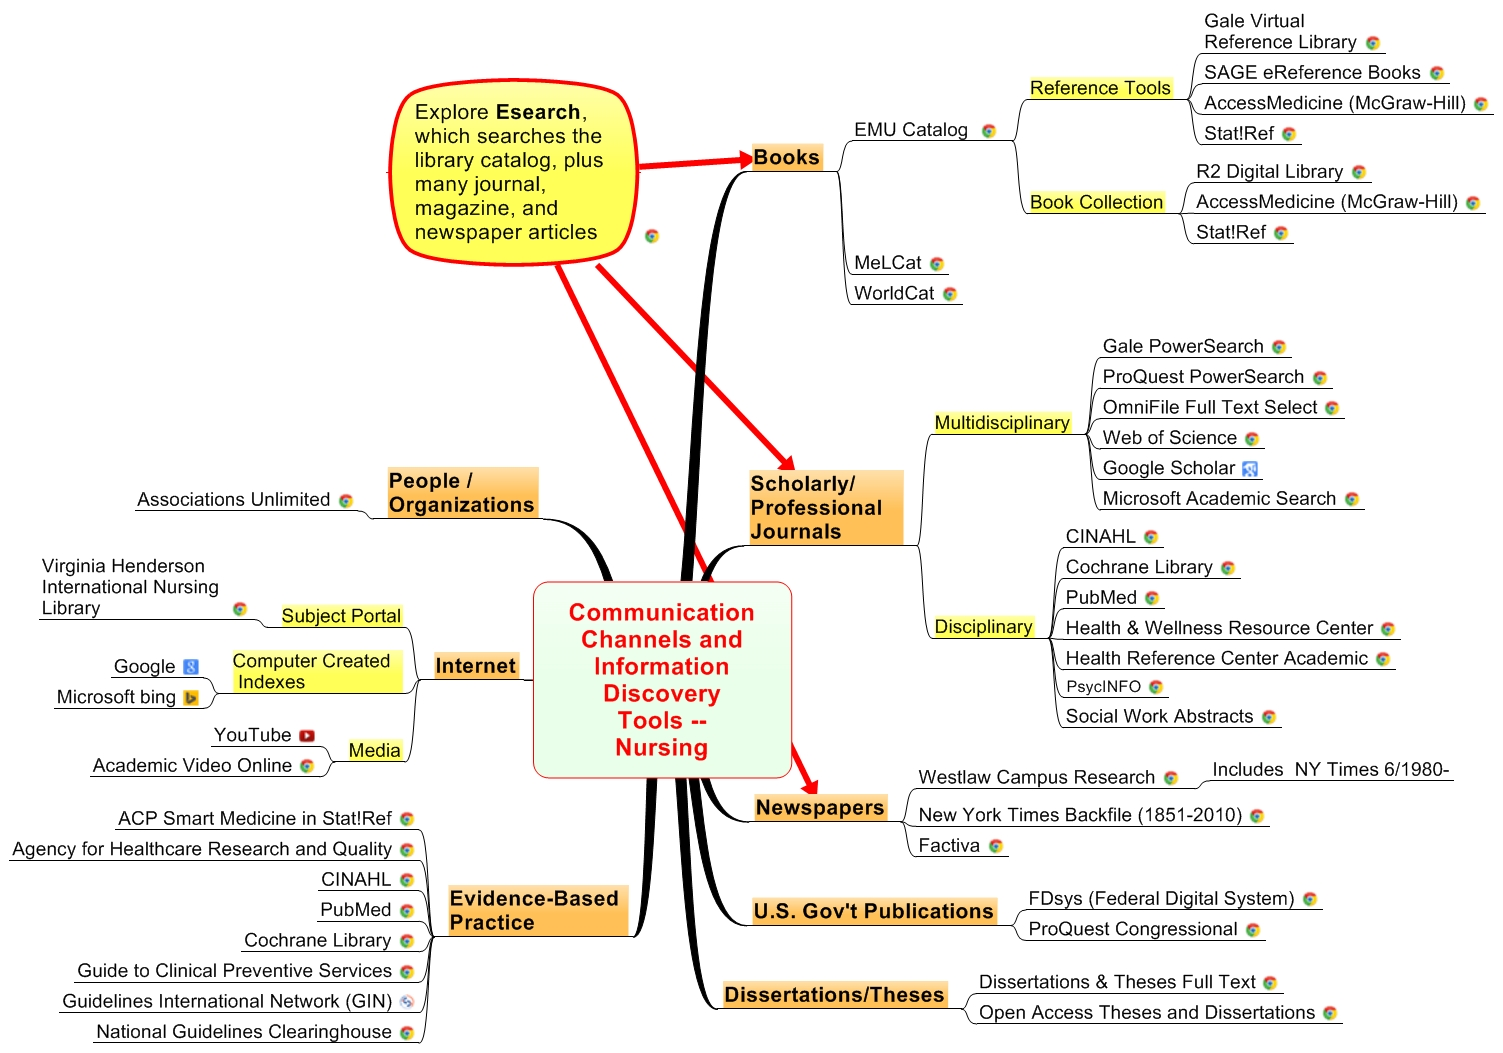 Communication Channels and Information Discovery Tools